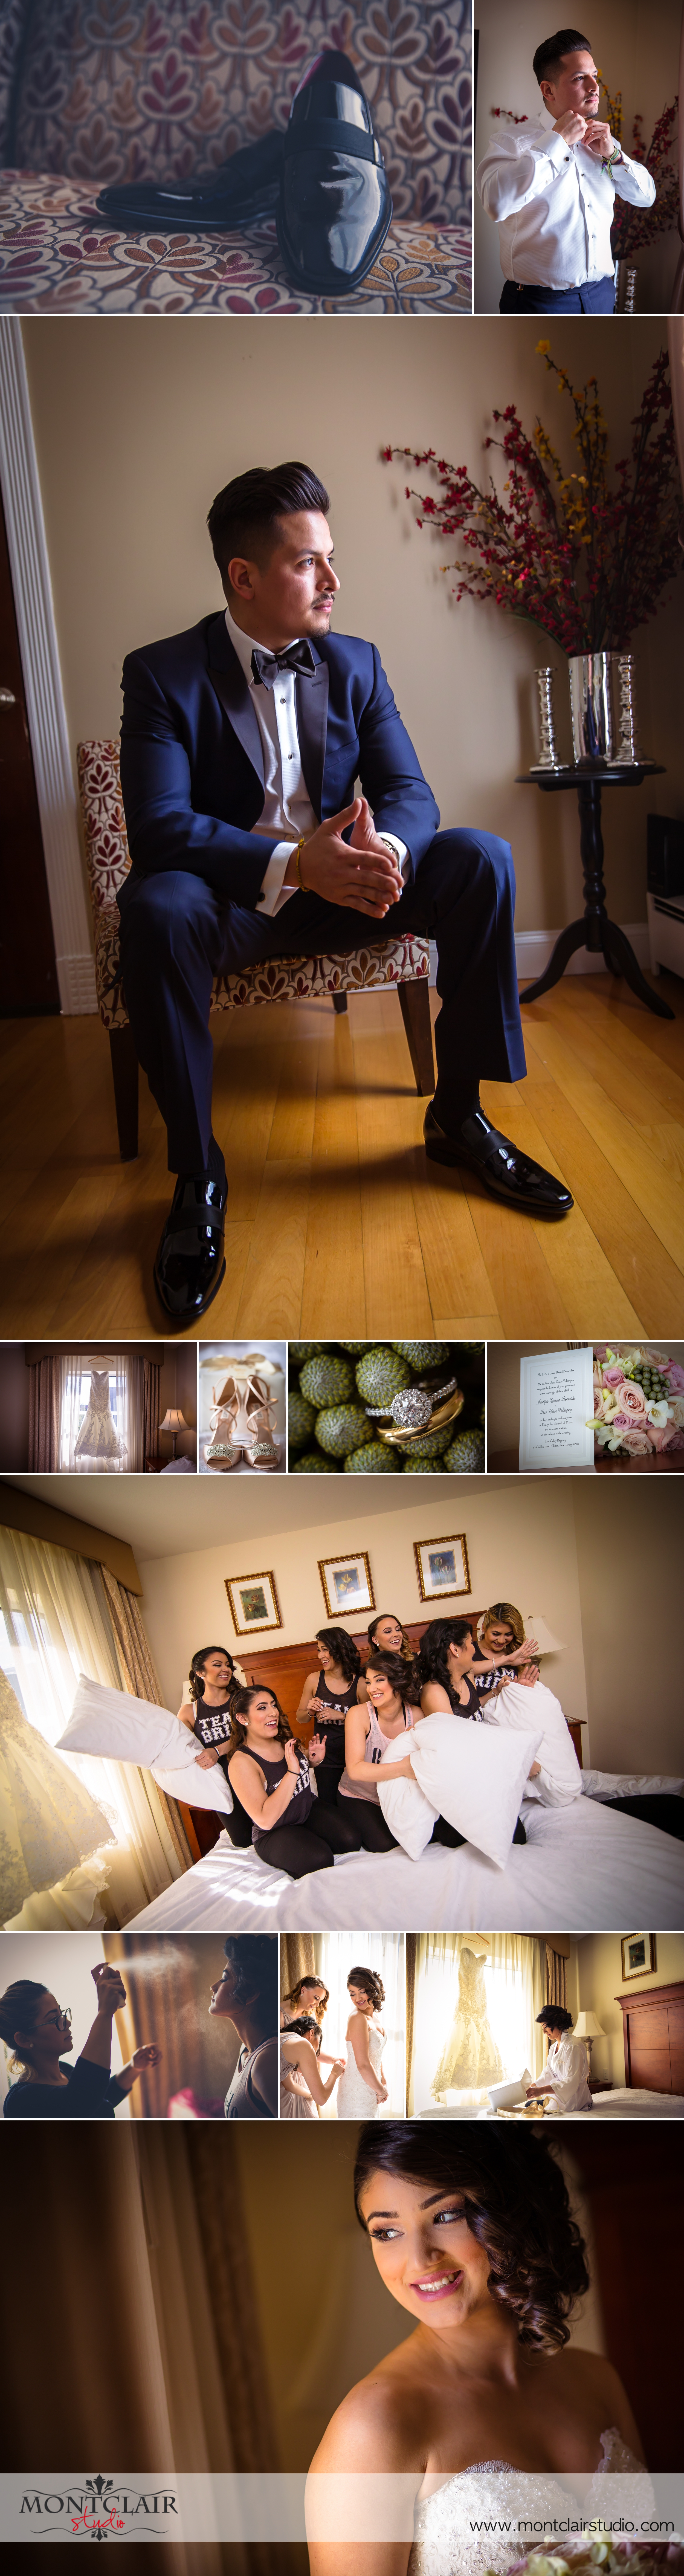 Wedding Jennifer And luis  1.jpg